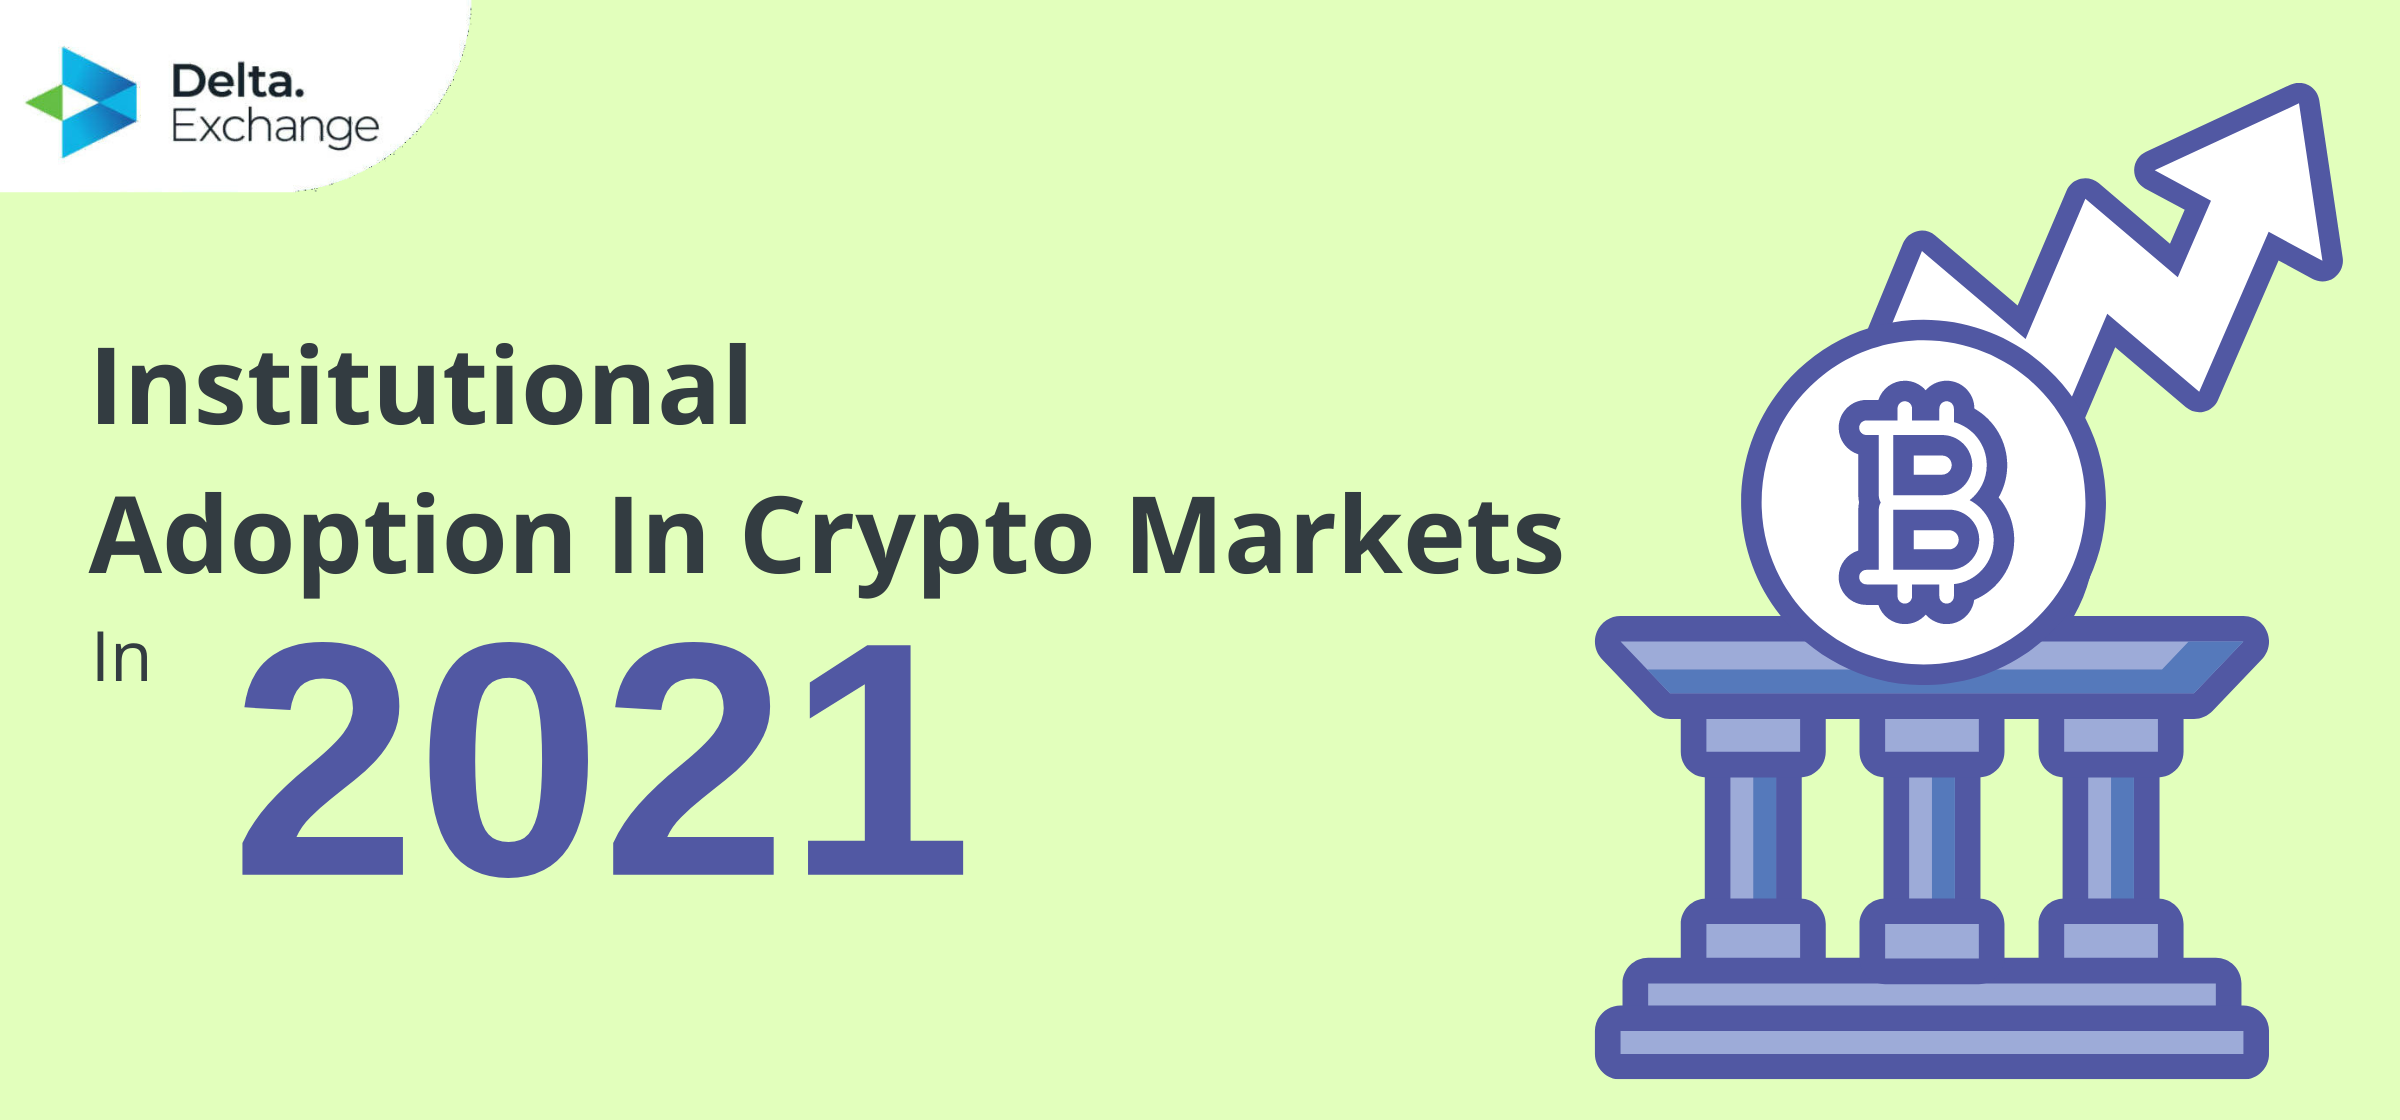 Impact of Institutional Adoption On Crypto Market in 2021